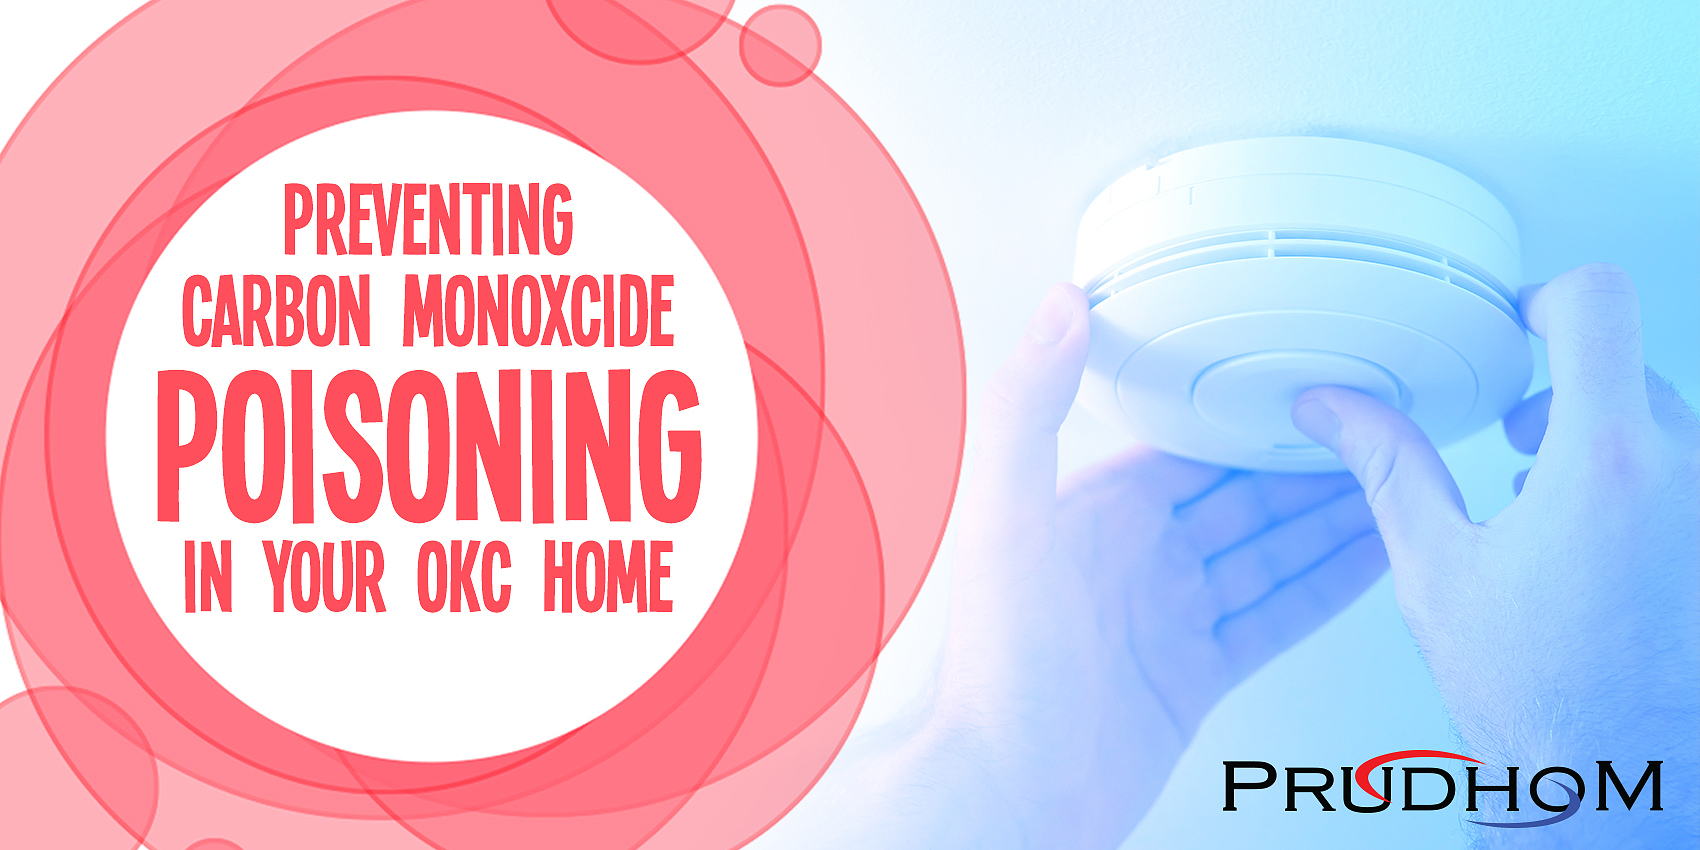 Preventing Carbon Monoxide Poisoning In Your OKC Home